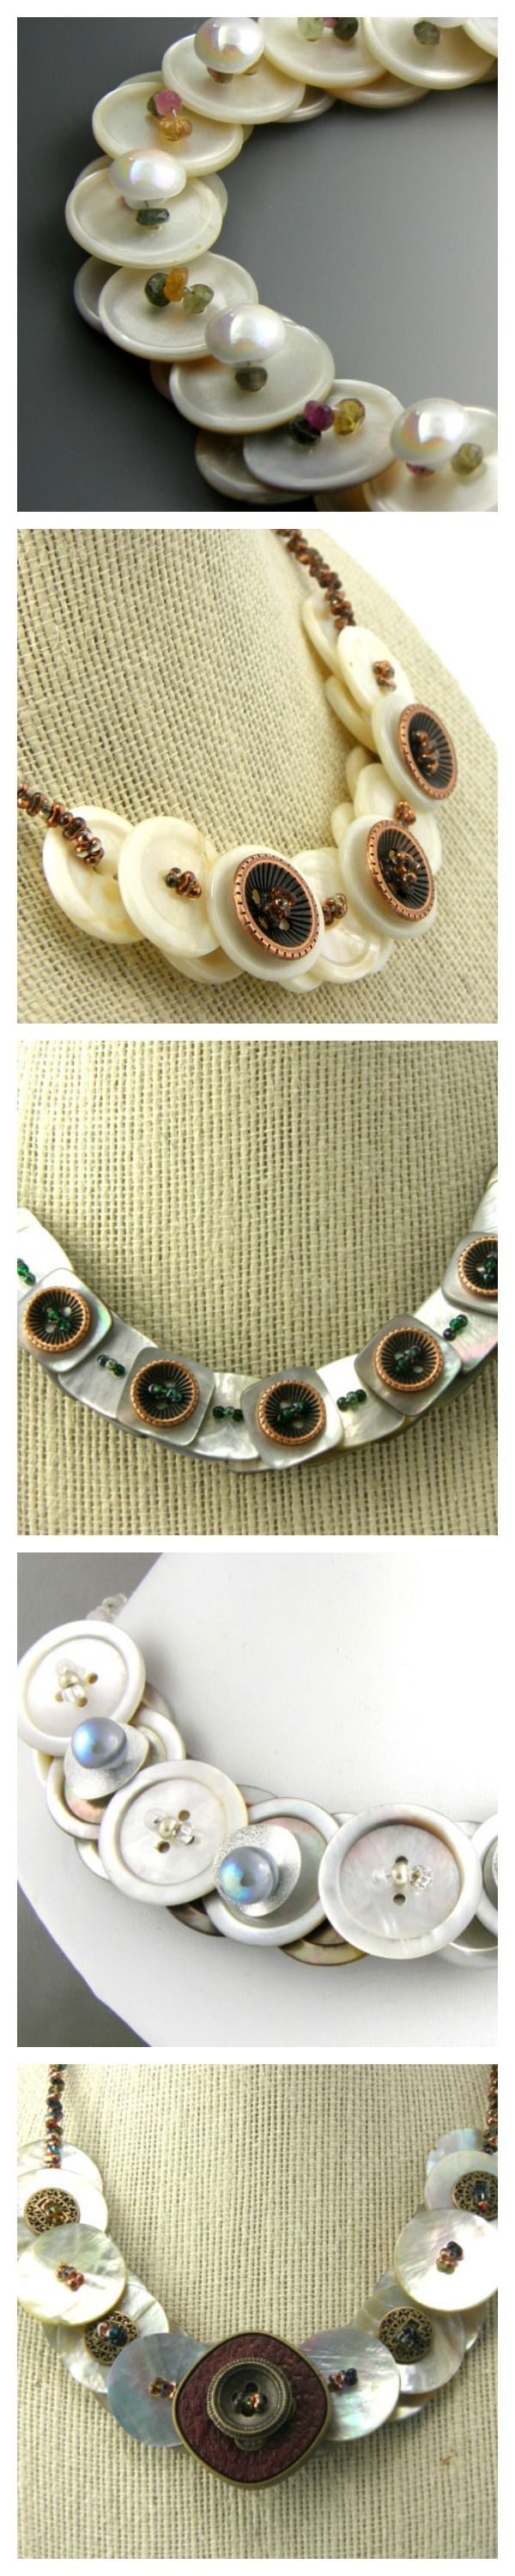 Amazing Button necklaces! Made from Mother of pearl buttons and shell buttons with a variety of gemstones and other beads. www.trinketsnwhatnots.etsy.com